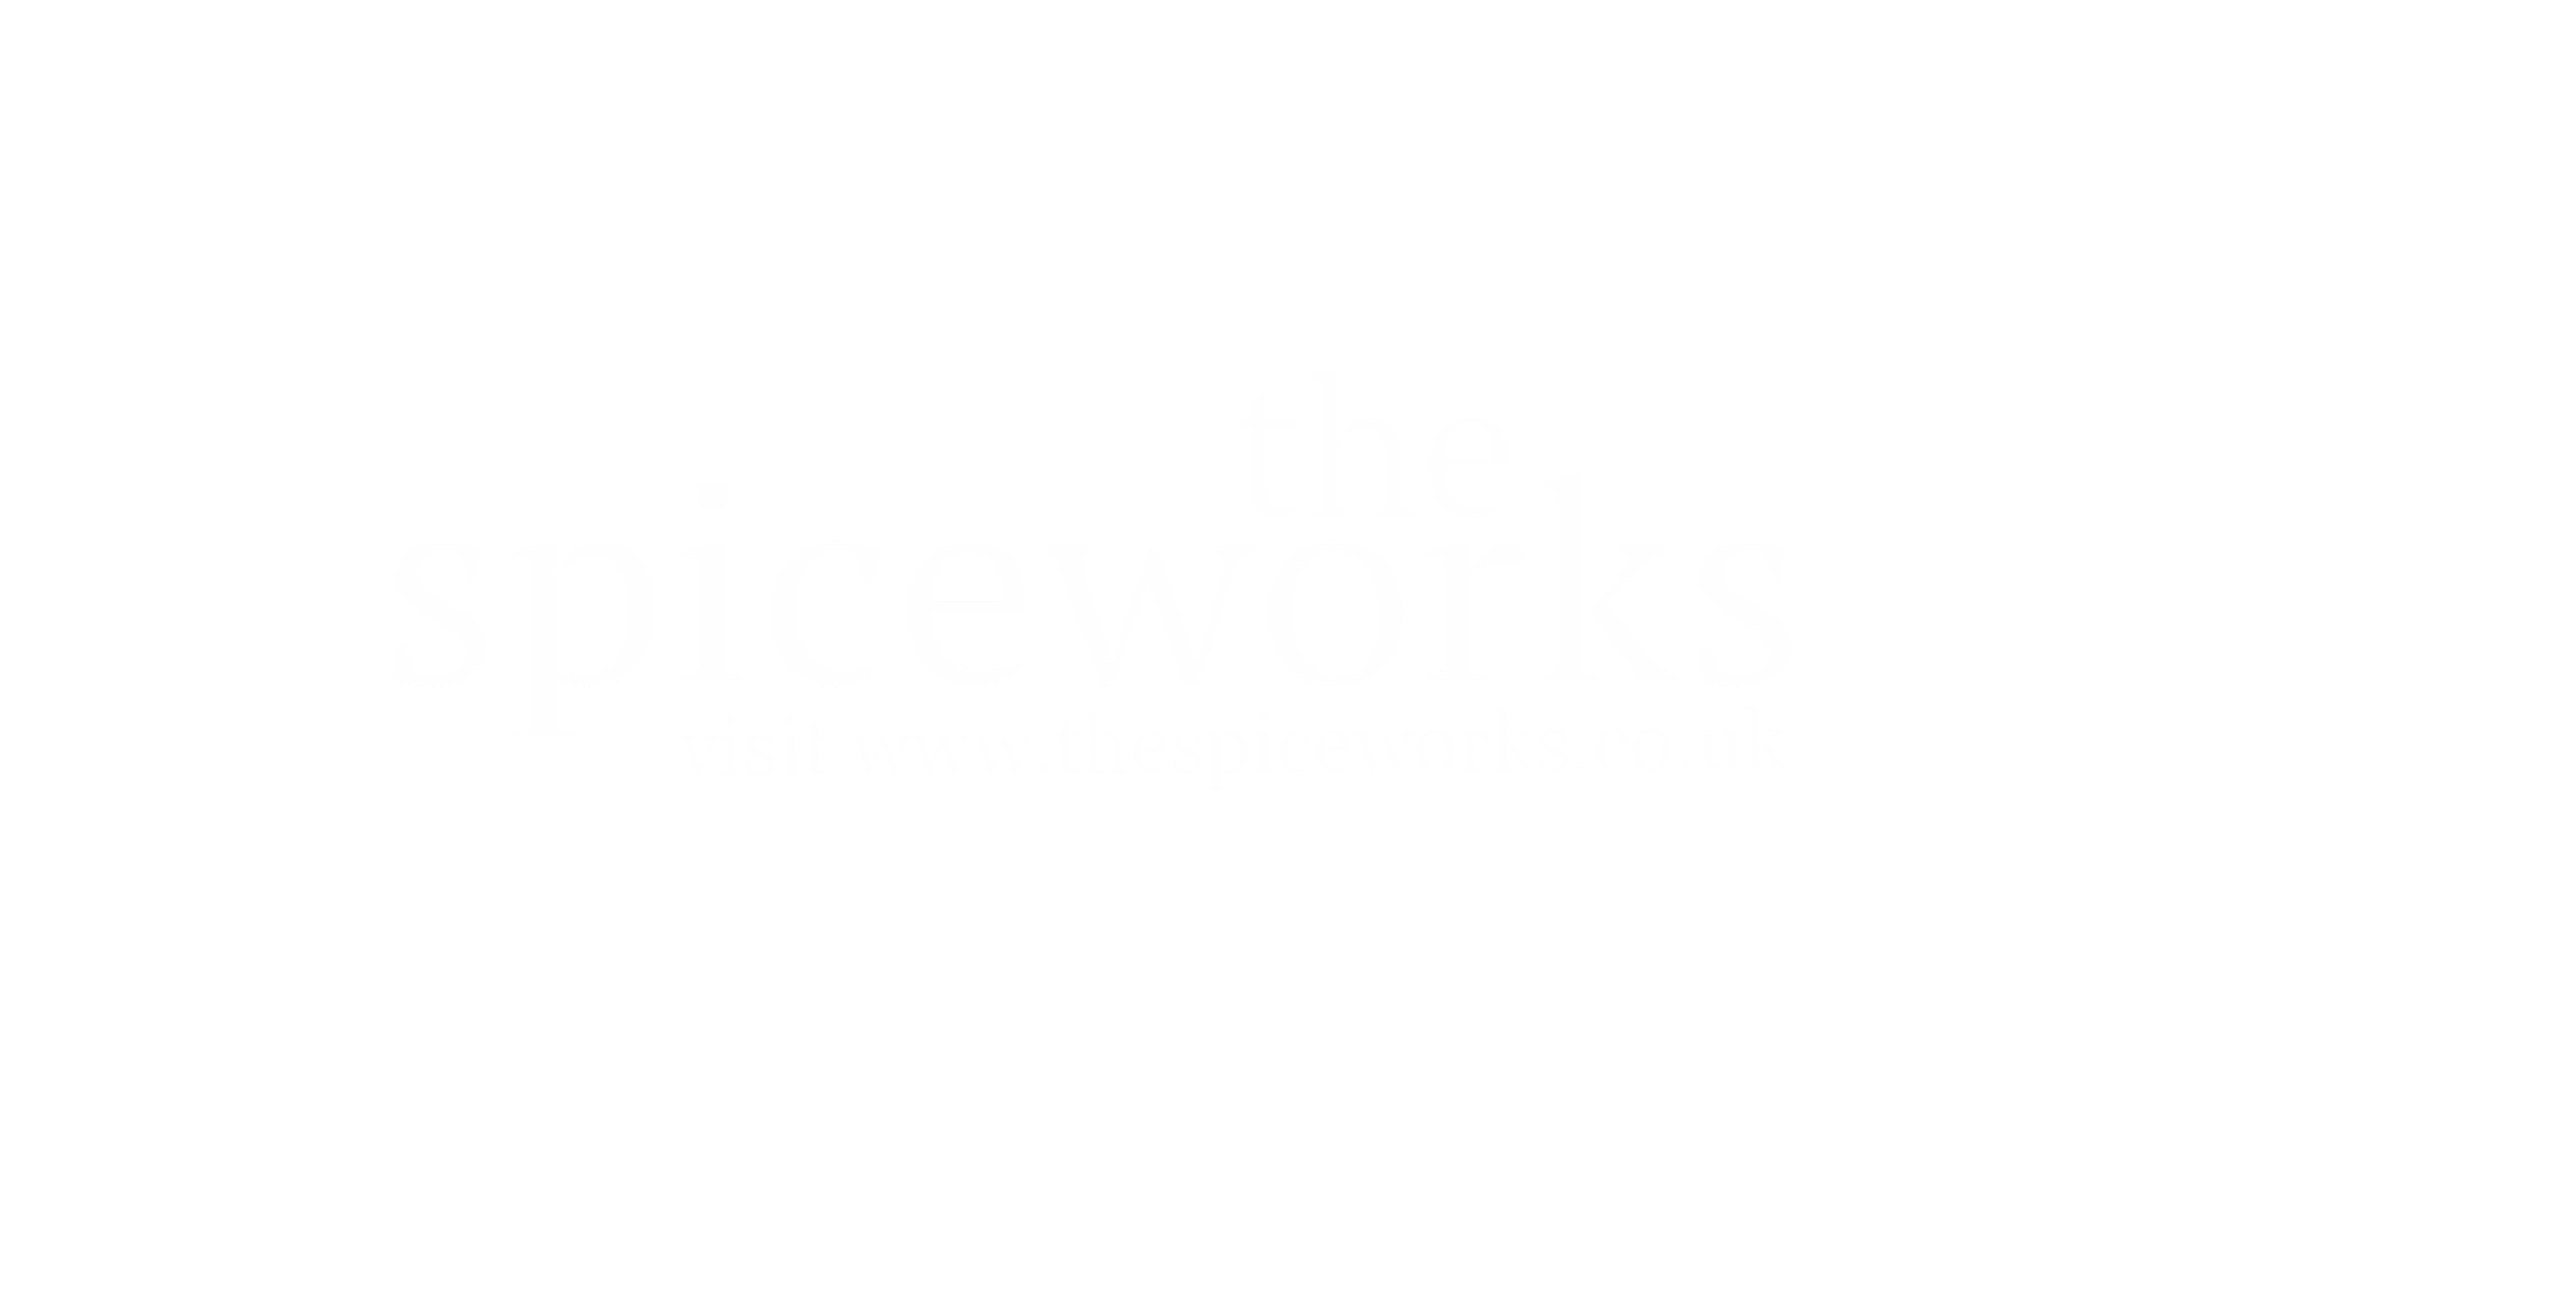 The Spiceworks | Online Wholesale Dried Herbs And Spices